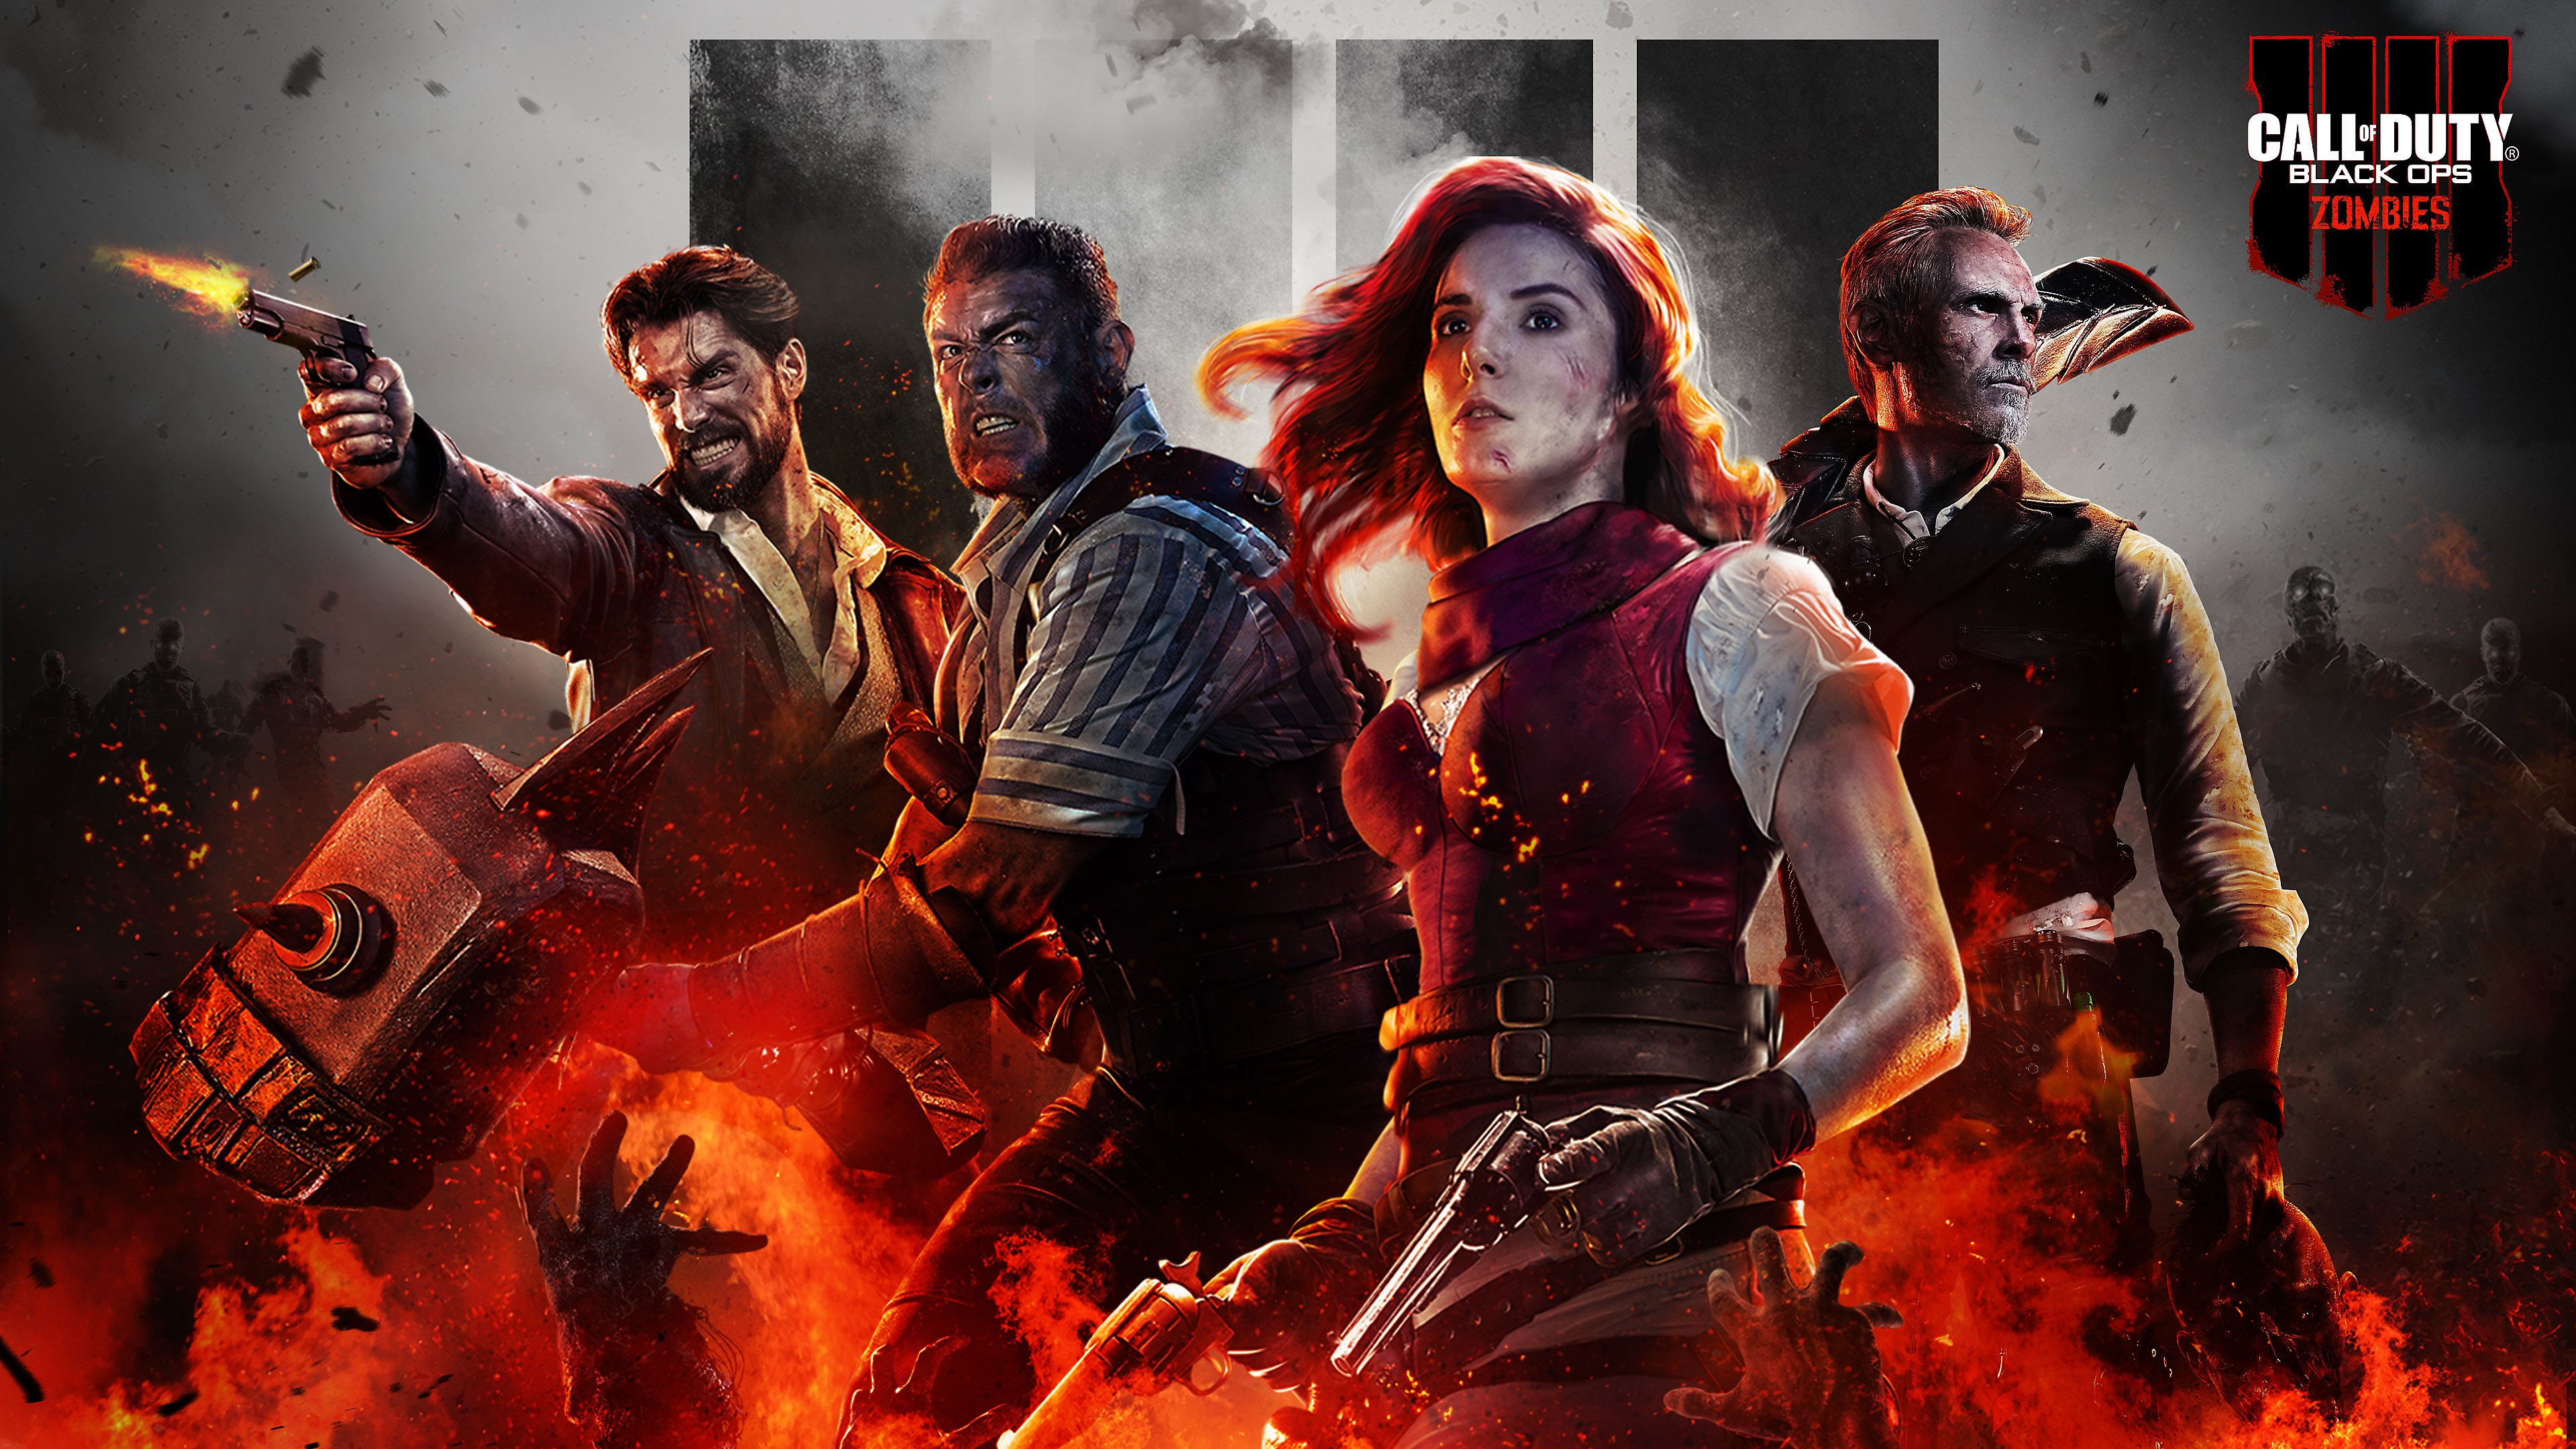 Call of Duty Black Ops 4 - Update 1.03 Patch Notes